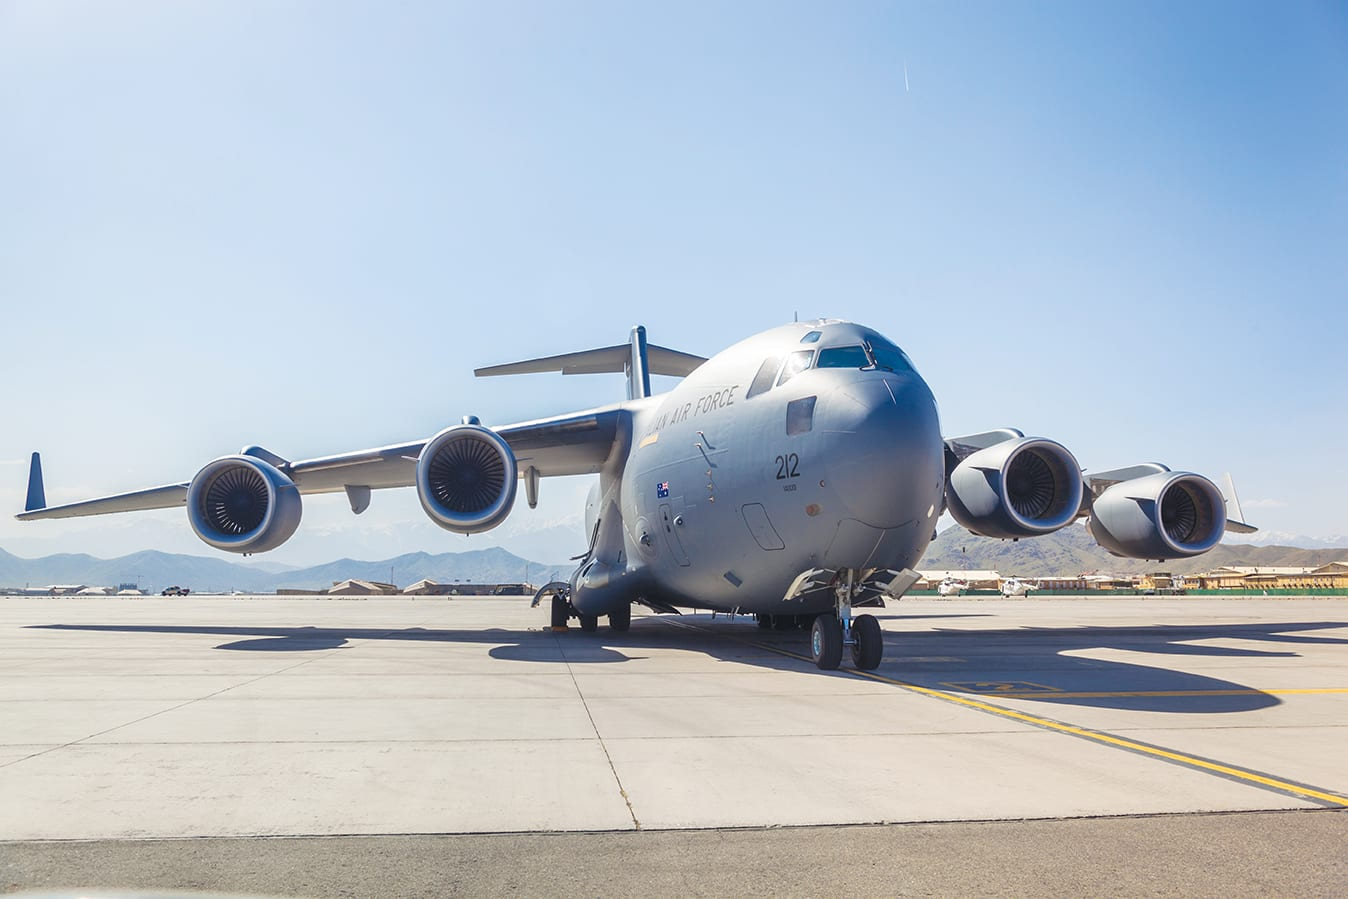 Kabul, Afghanistan - April 30, 2016: Australian Air Force C-17 Military Cargo Transport Aircraft on the taxiway.